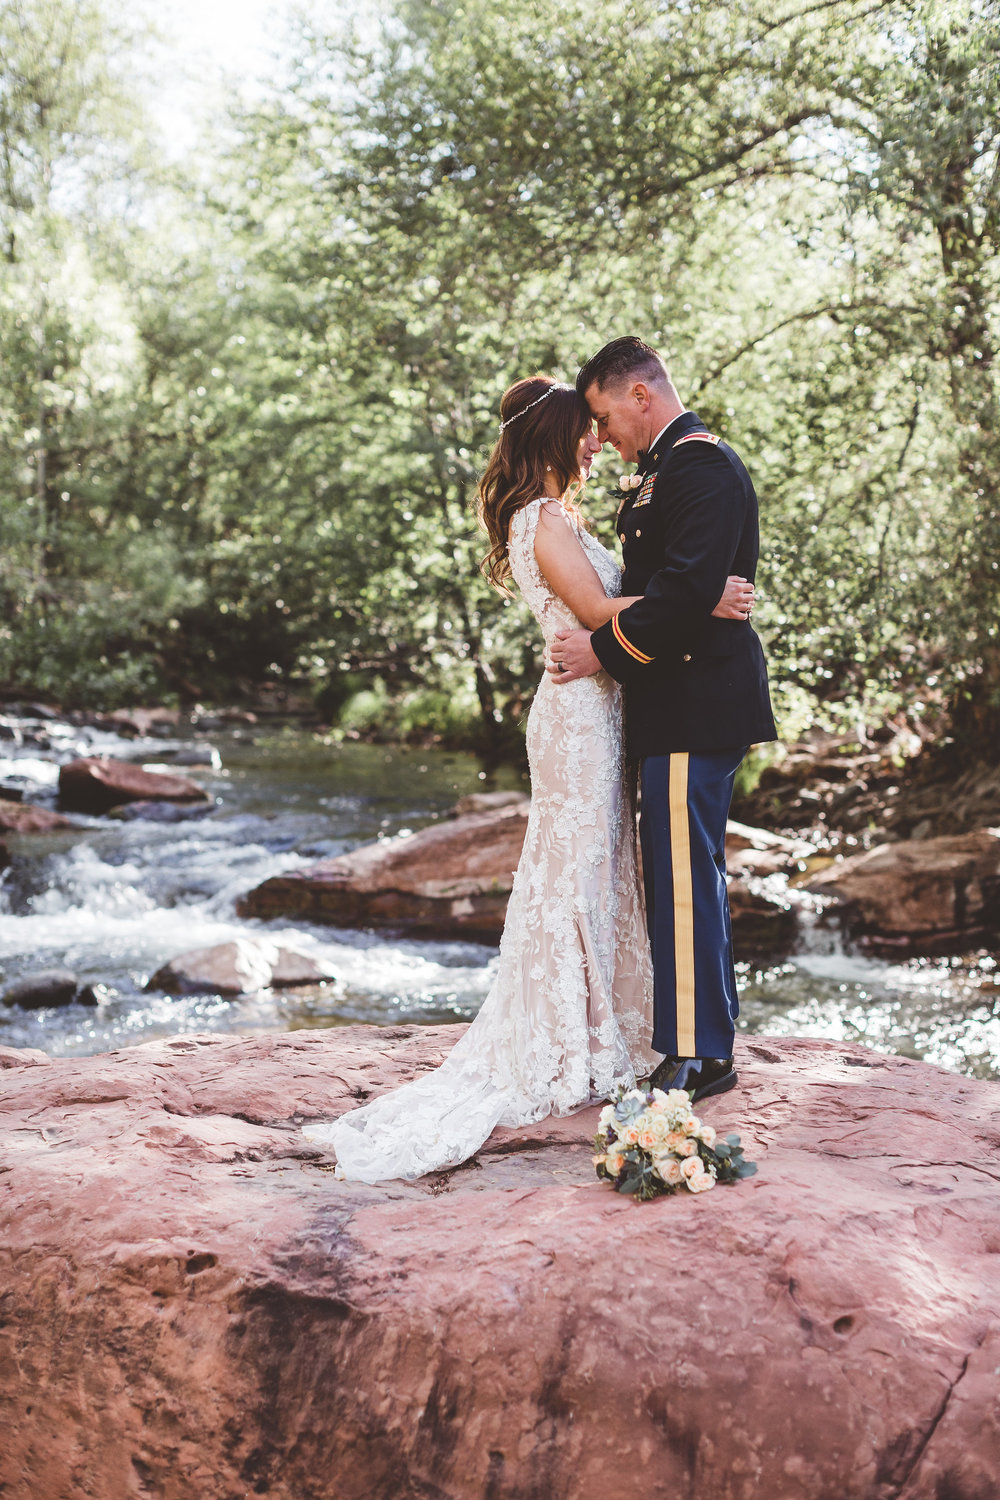 jenna-and-erics-romantic-sedona-wedding29.jpg